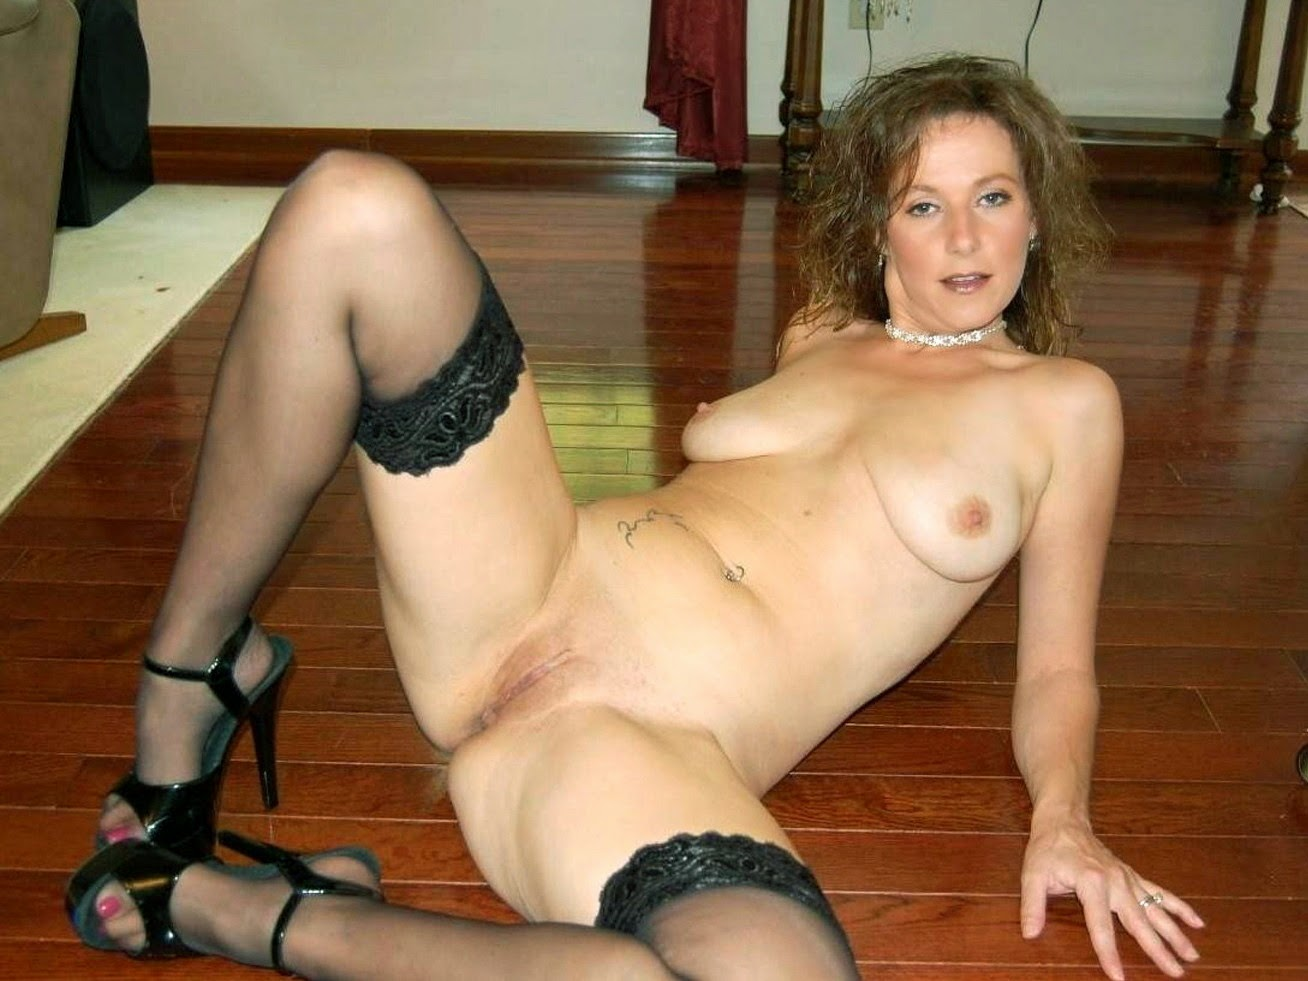 Amateur wife wearing lingerie